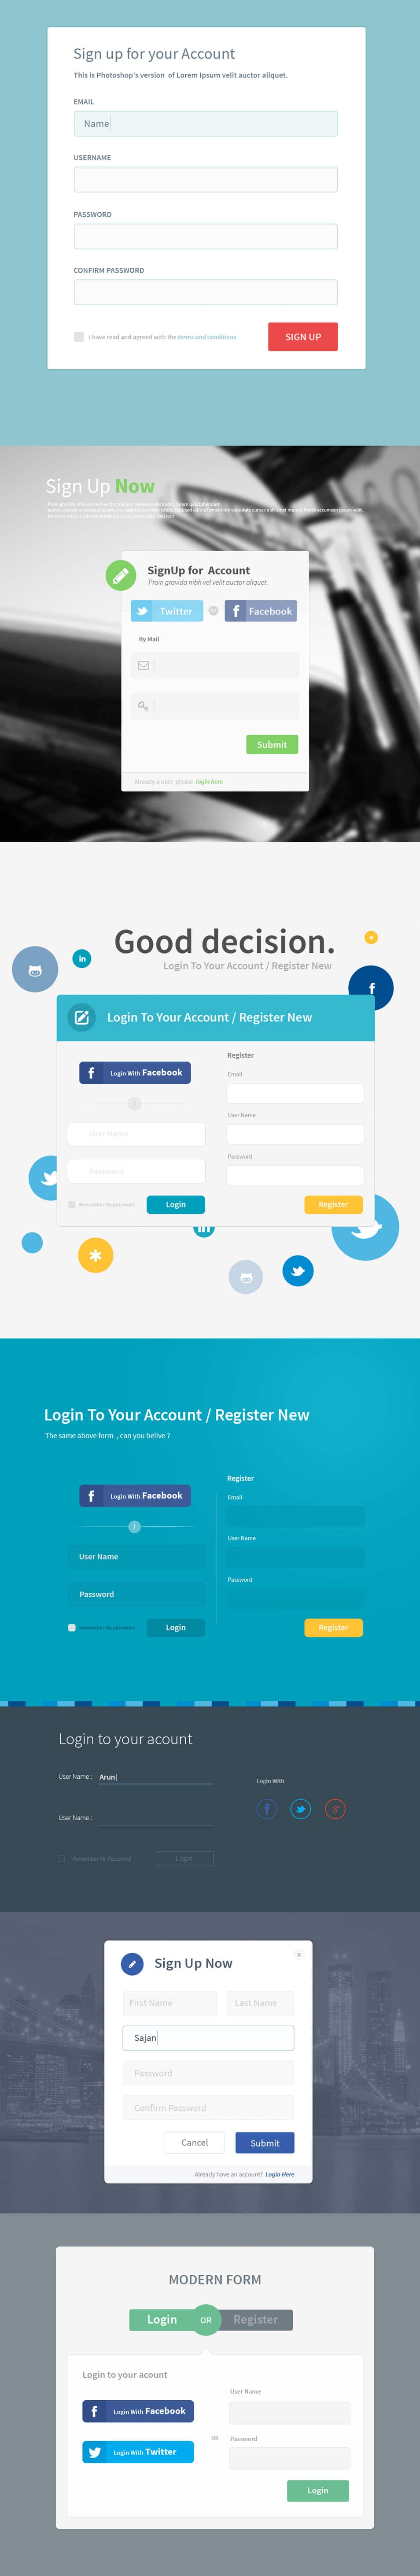 7 Registration Form Templates PSD